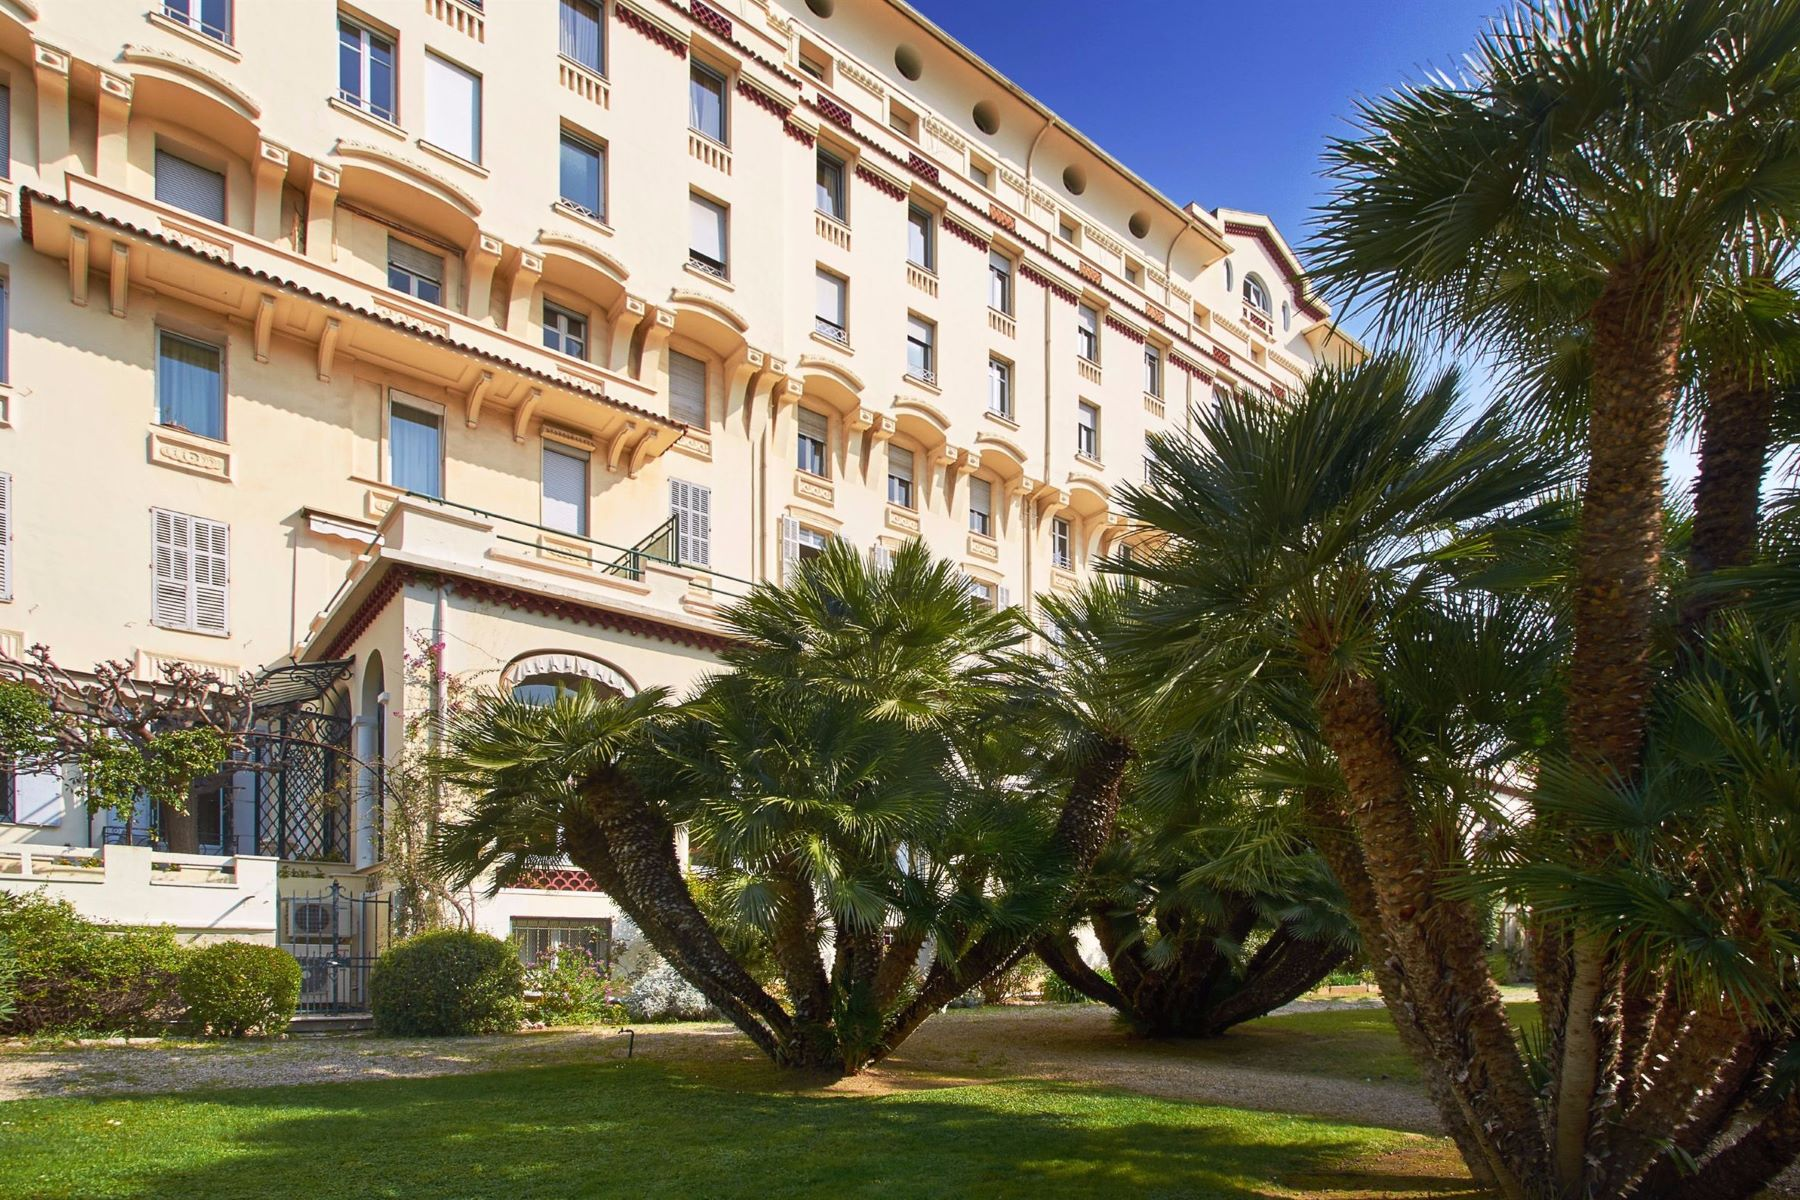 Property for Sale at Belle-Époque mansion : luxury apartment for sale in Cannes - French Riviera Cannes, Provence-Alpes-Cote D'Azur 06400 France